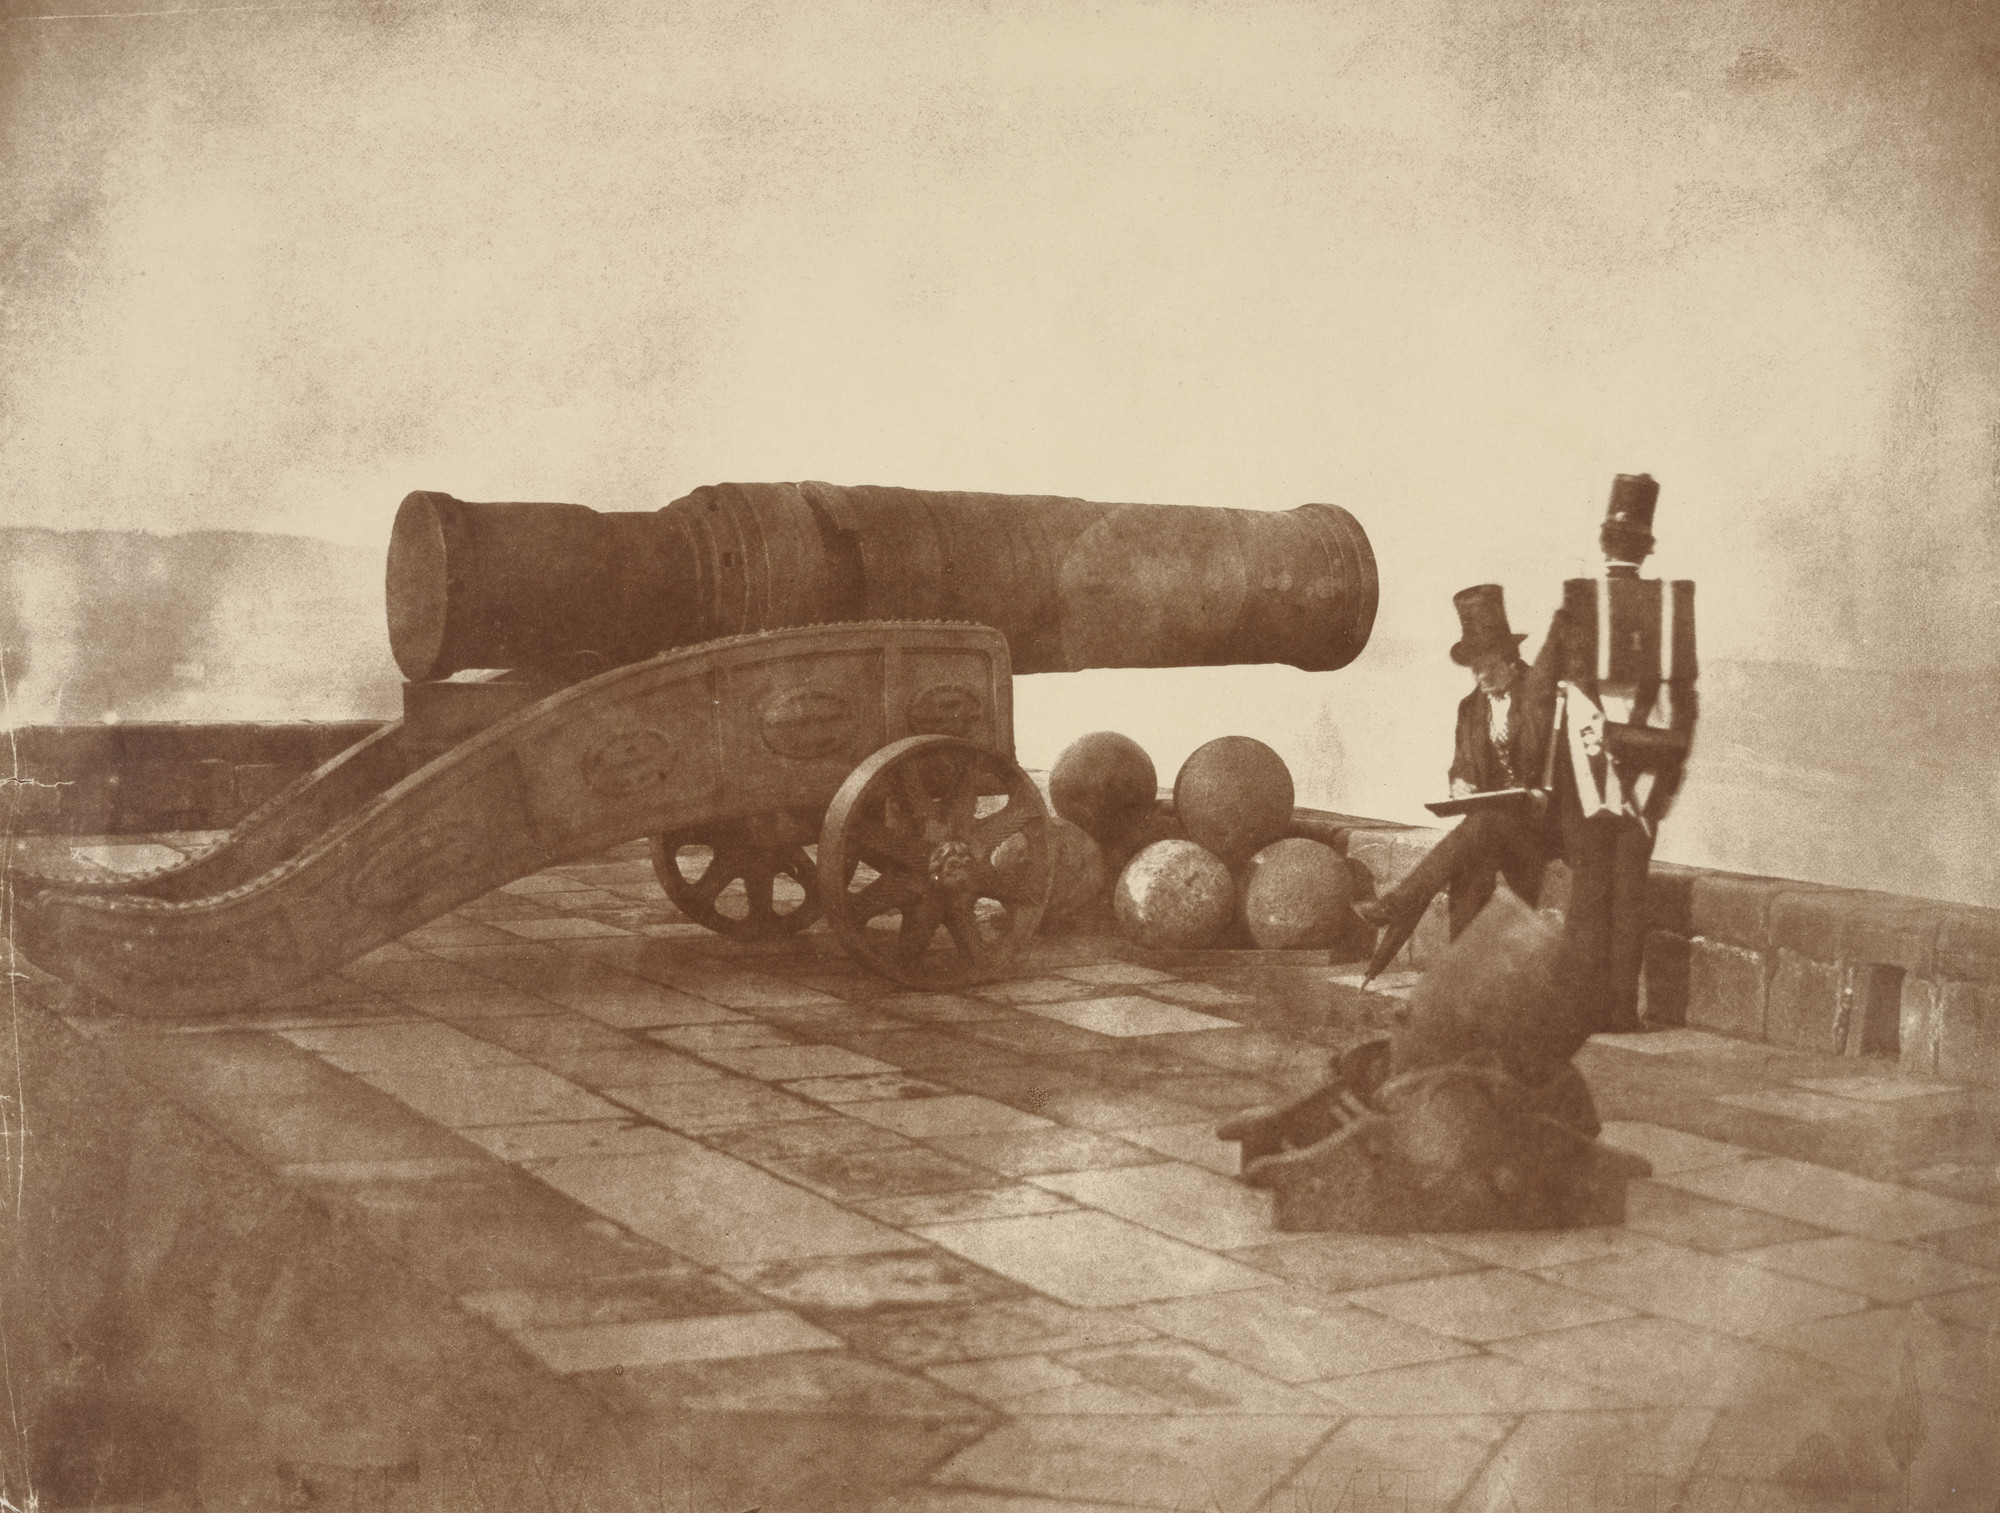 David Octavius Hill, Robert Adamson. Mons Meg, Edinburgh Castle. 1843-48